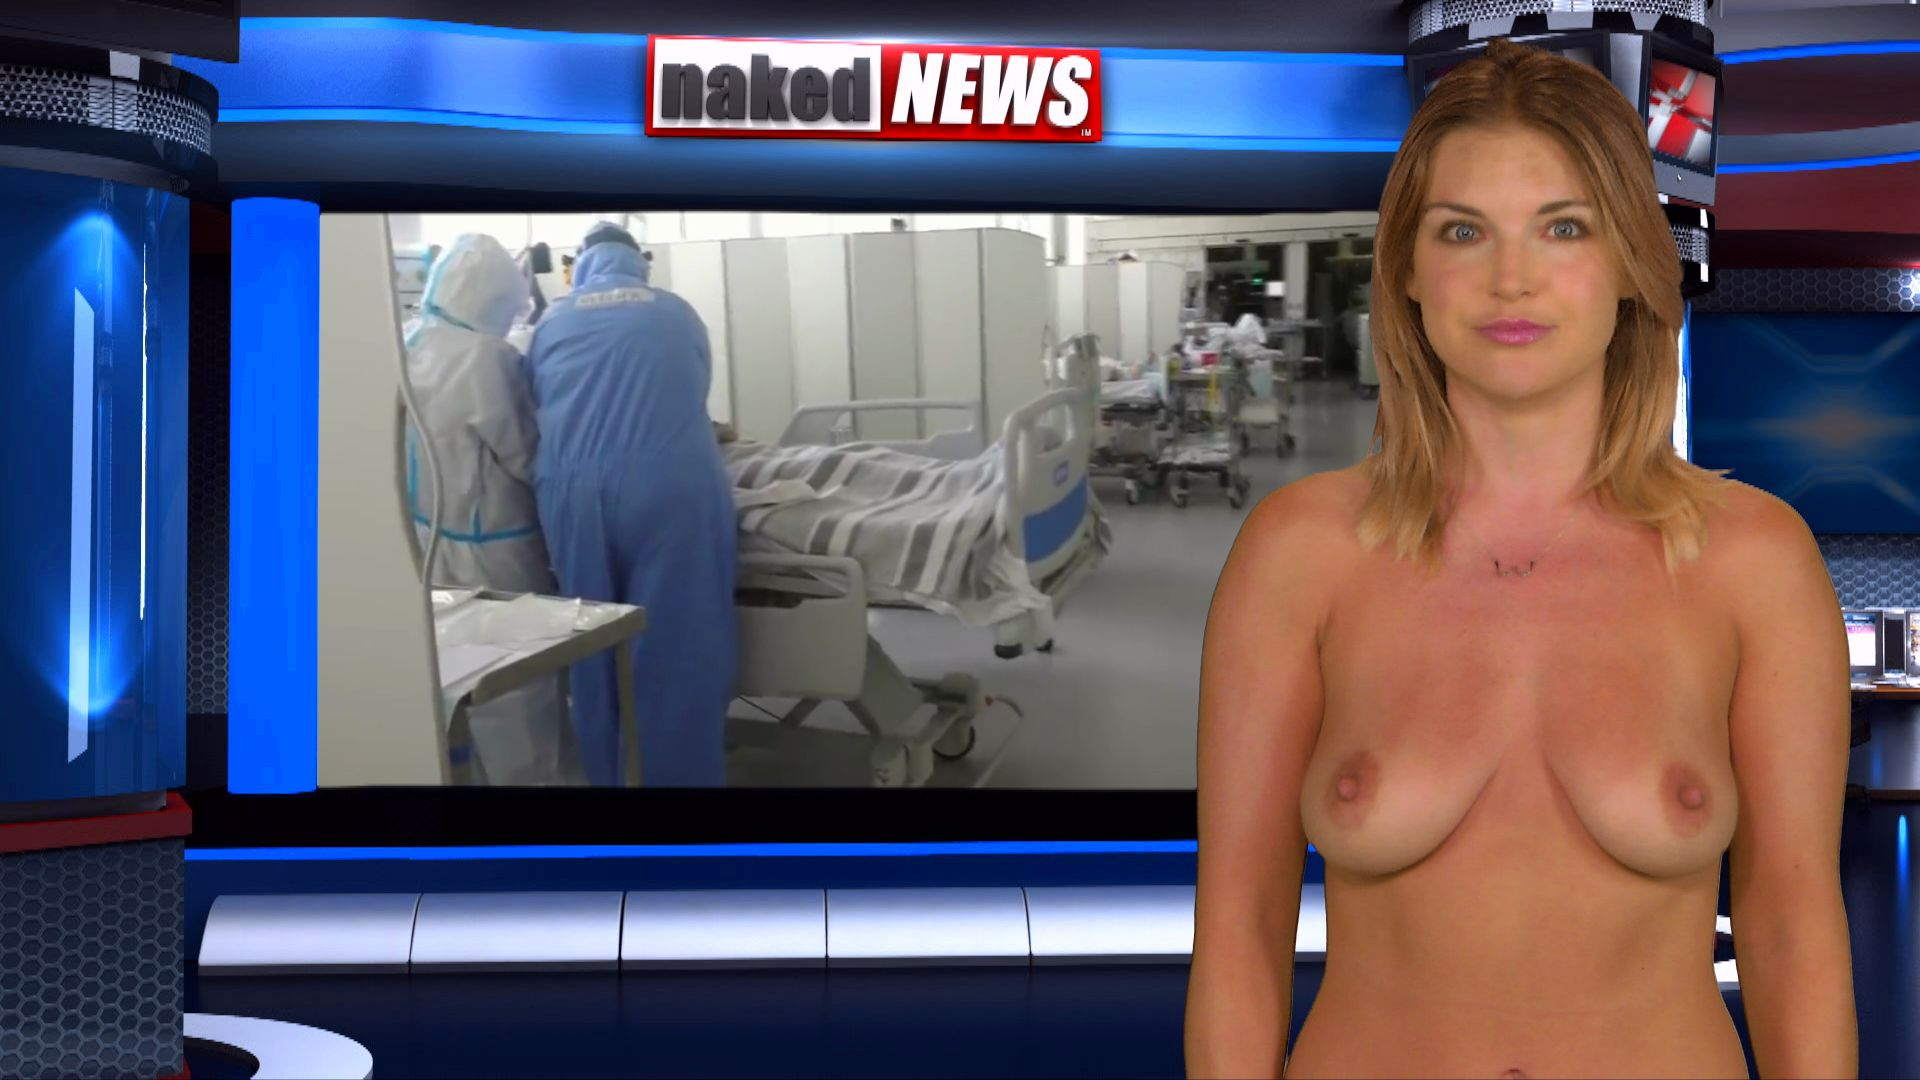 Girls nude weather The temperature's